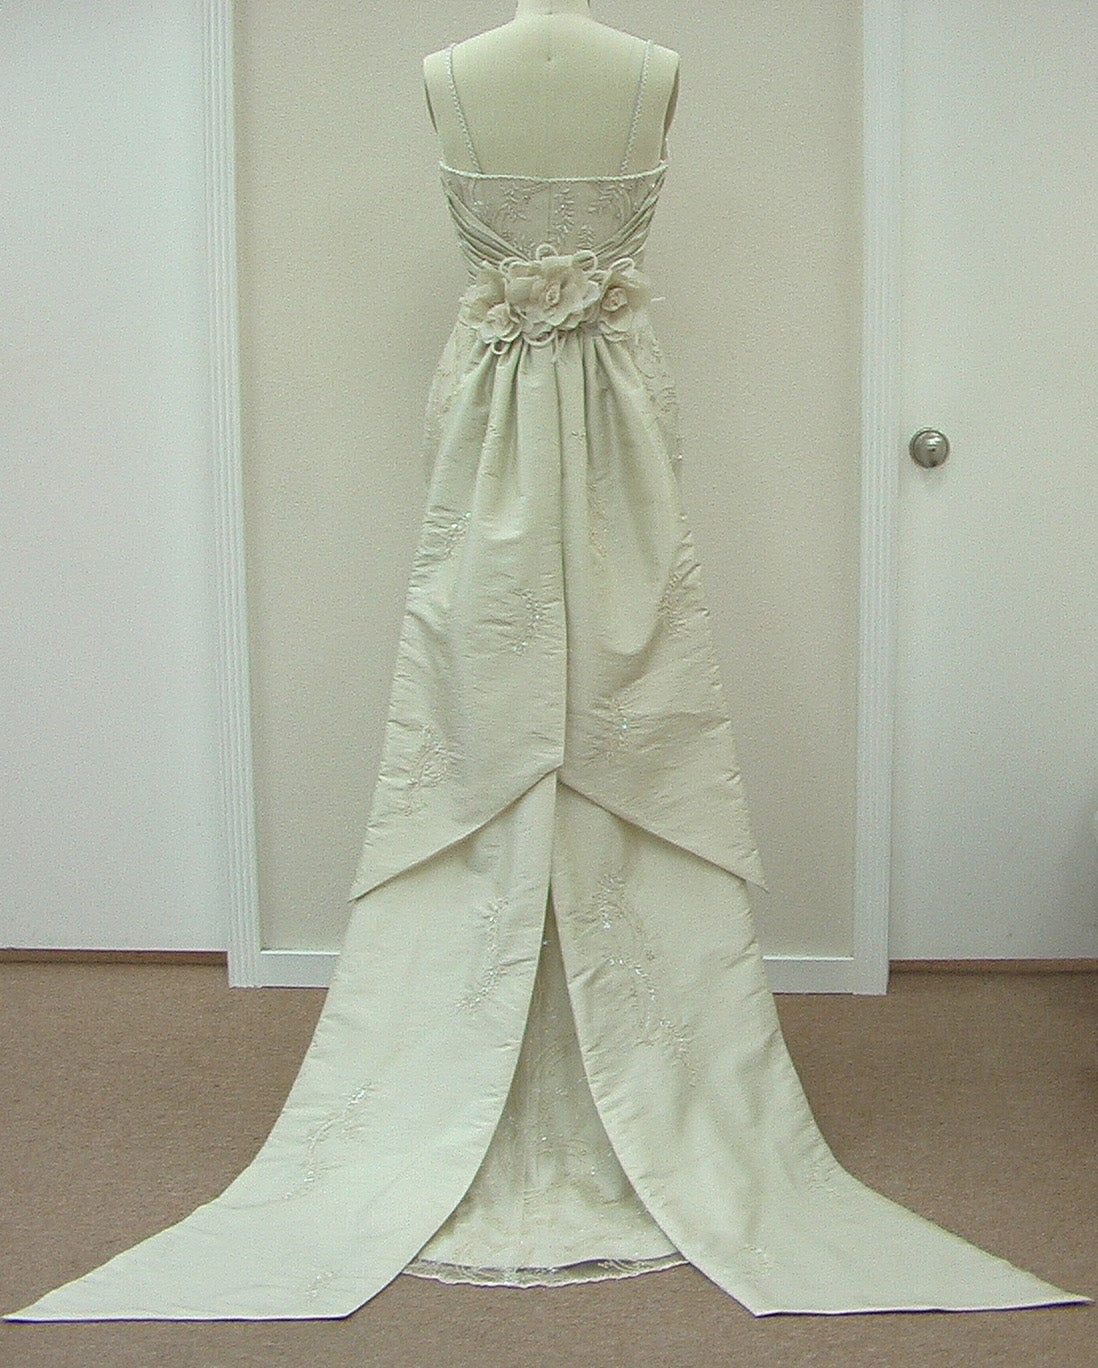 Pattis 1015 Anneliese Sand size 8 In Stock Wedding Dress - Tom's Bridal